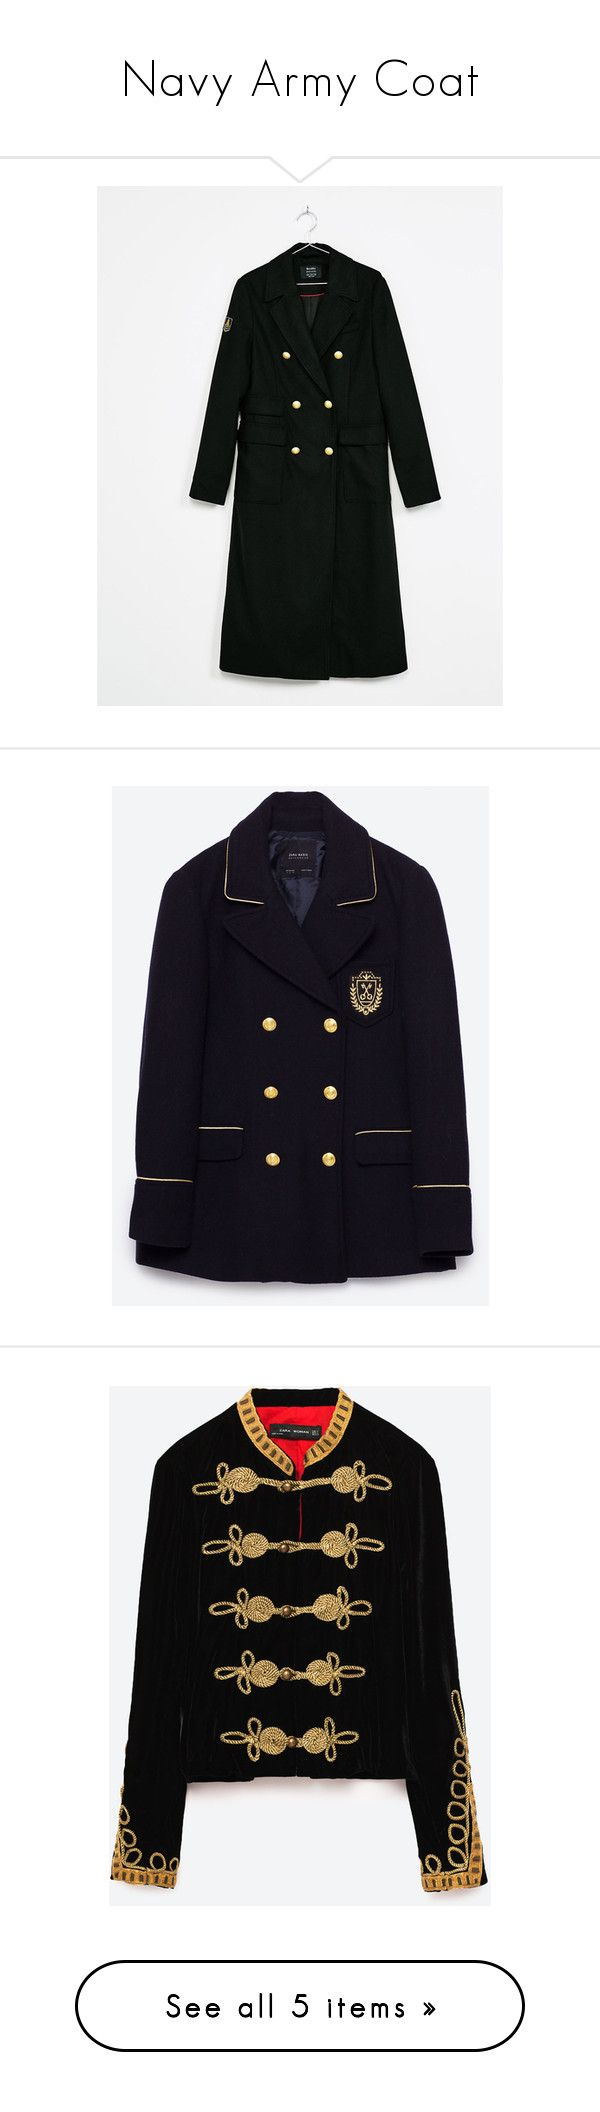 """Navy Army Coat"" by leeline ❤ liked on Polyvore featuring outerwear, coats, zara, jackets, toggle jacket, velvet jacket, long coat, blue coat, long military coat and military coat"